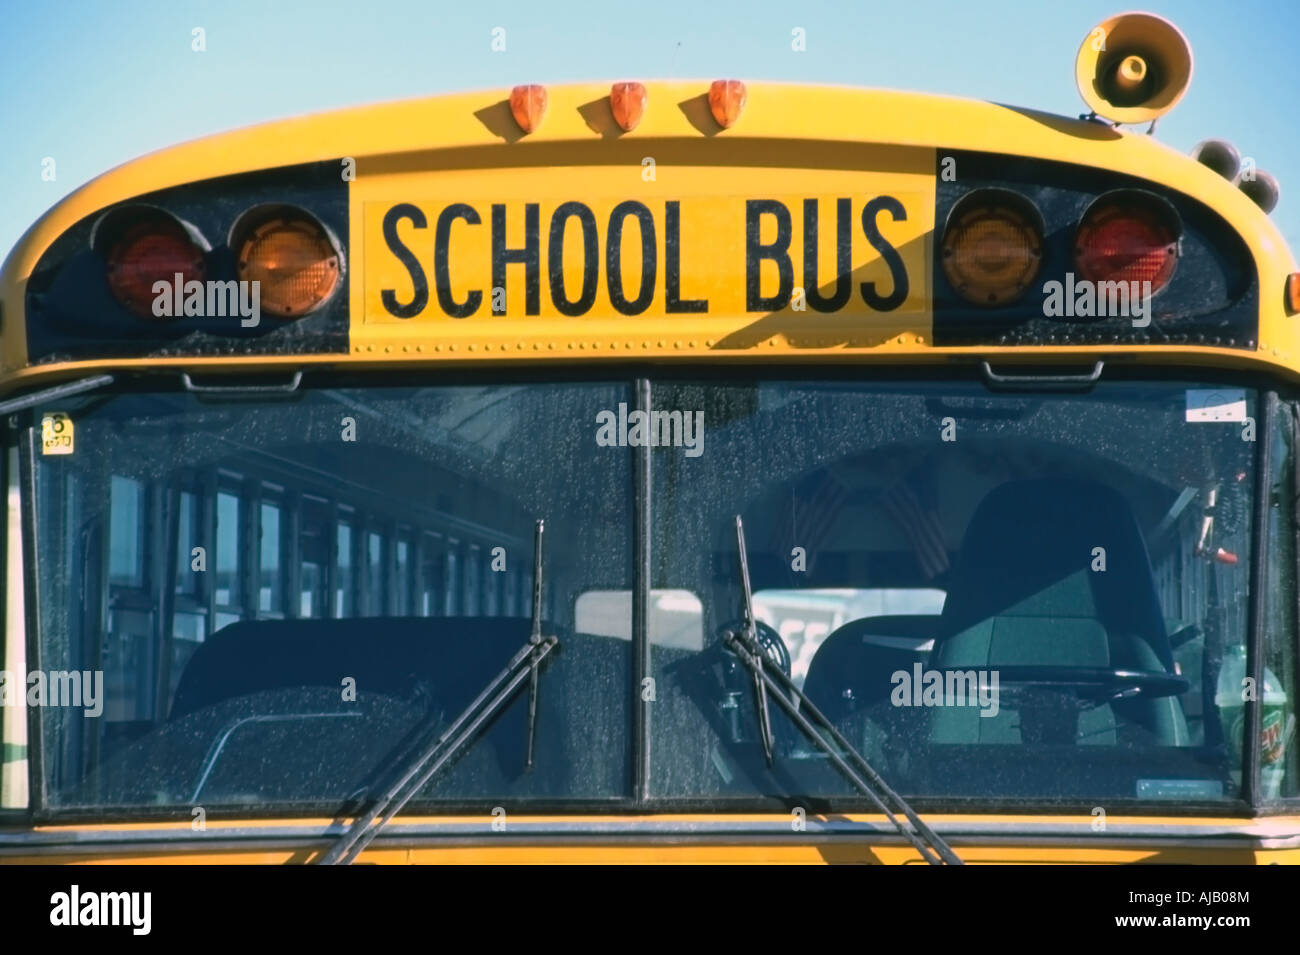 A Head On Up Close View Of A Bright Yellow School Bus